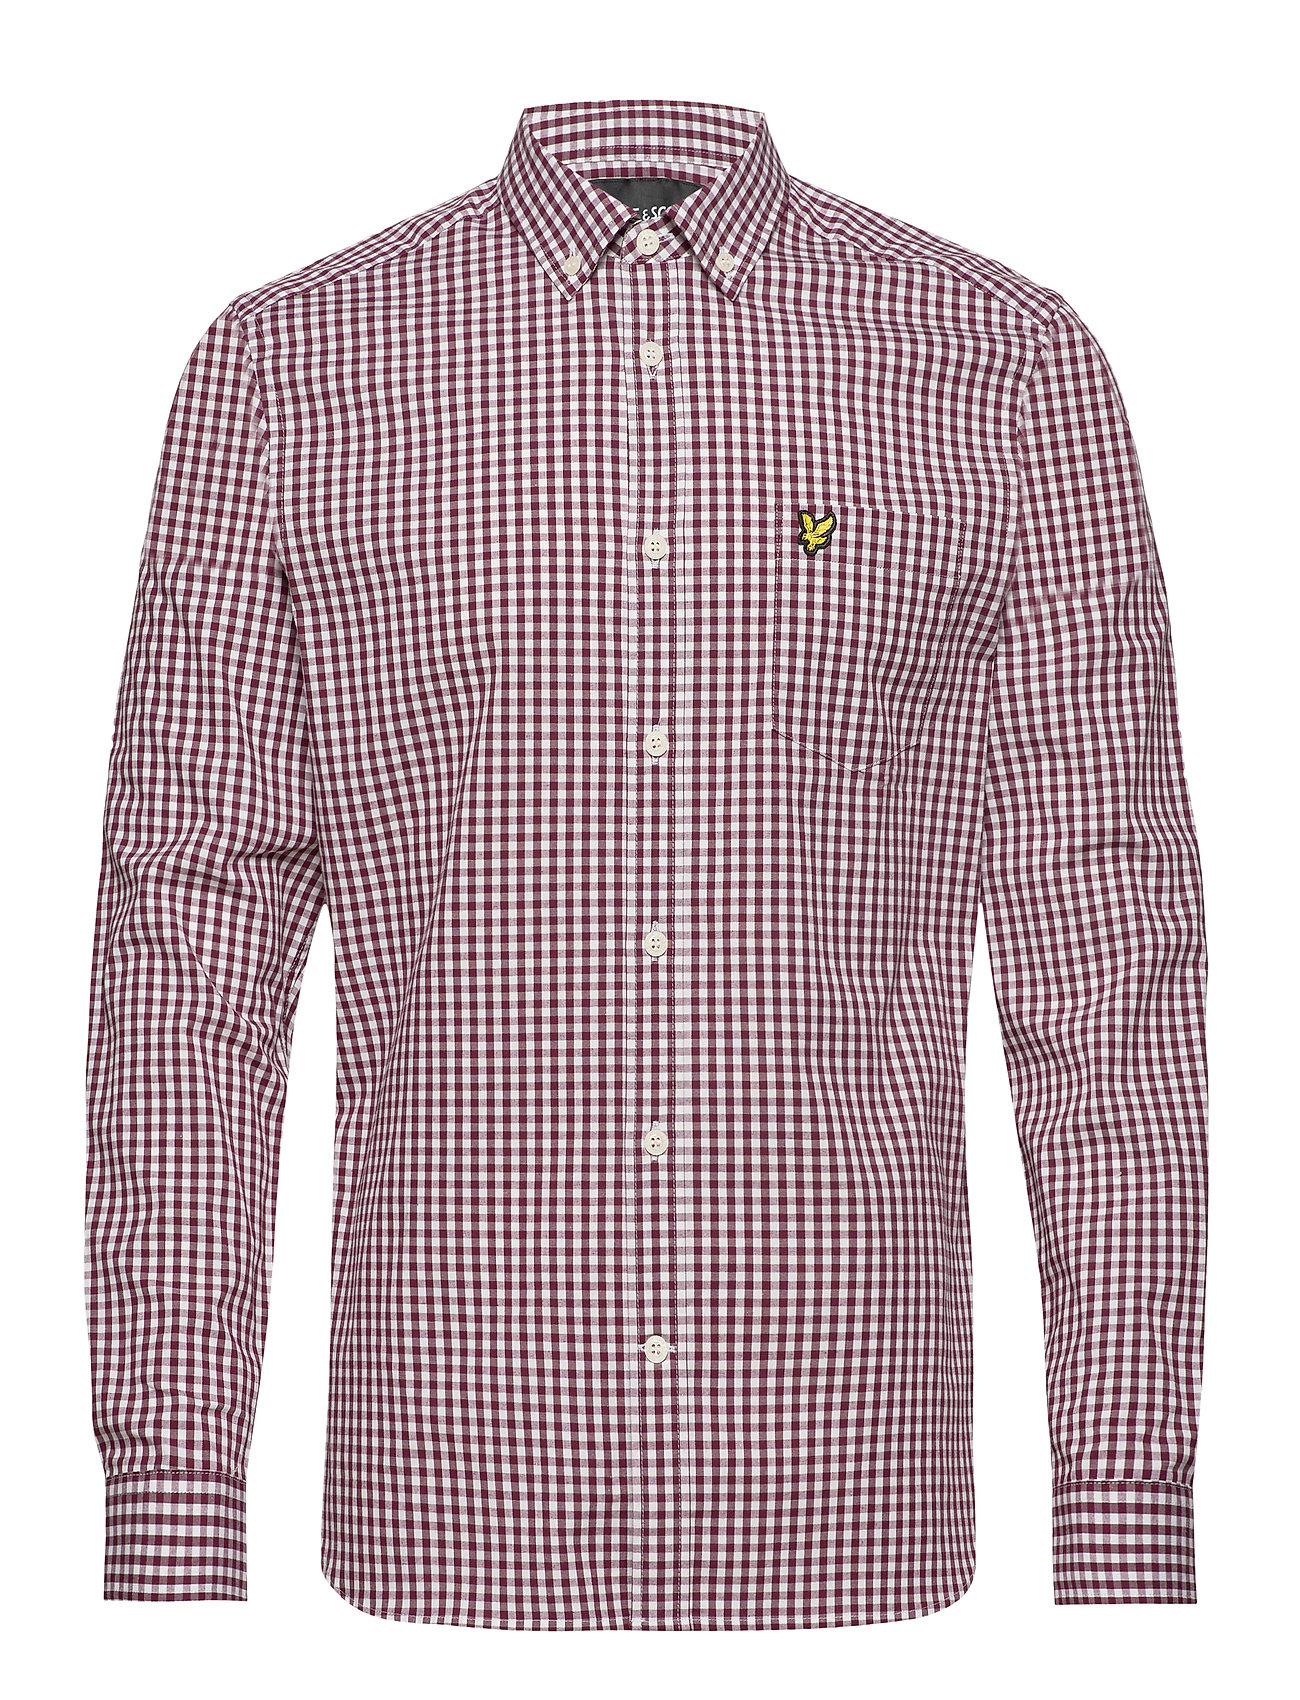 Lyle & Scott LS Slim Fit Gingham Shirt - MERLOT/WHITE